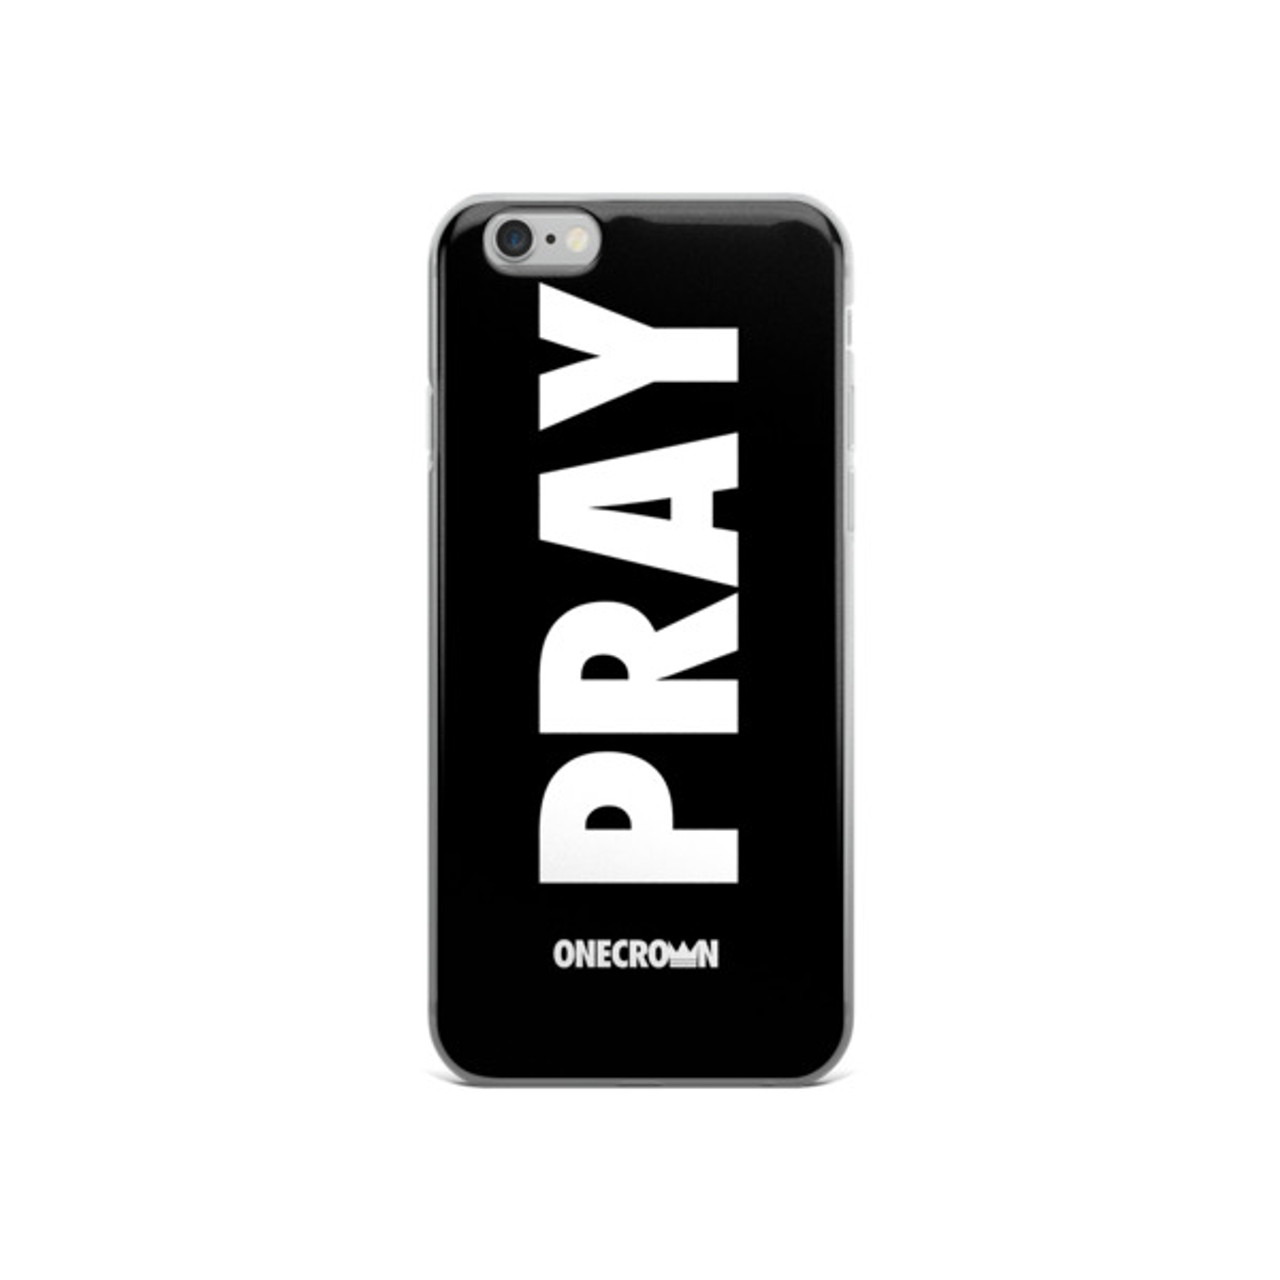 PRAY iPhone 5/5s/Se, 6/6s, 6/6s Plus Case - Black